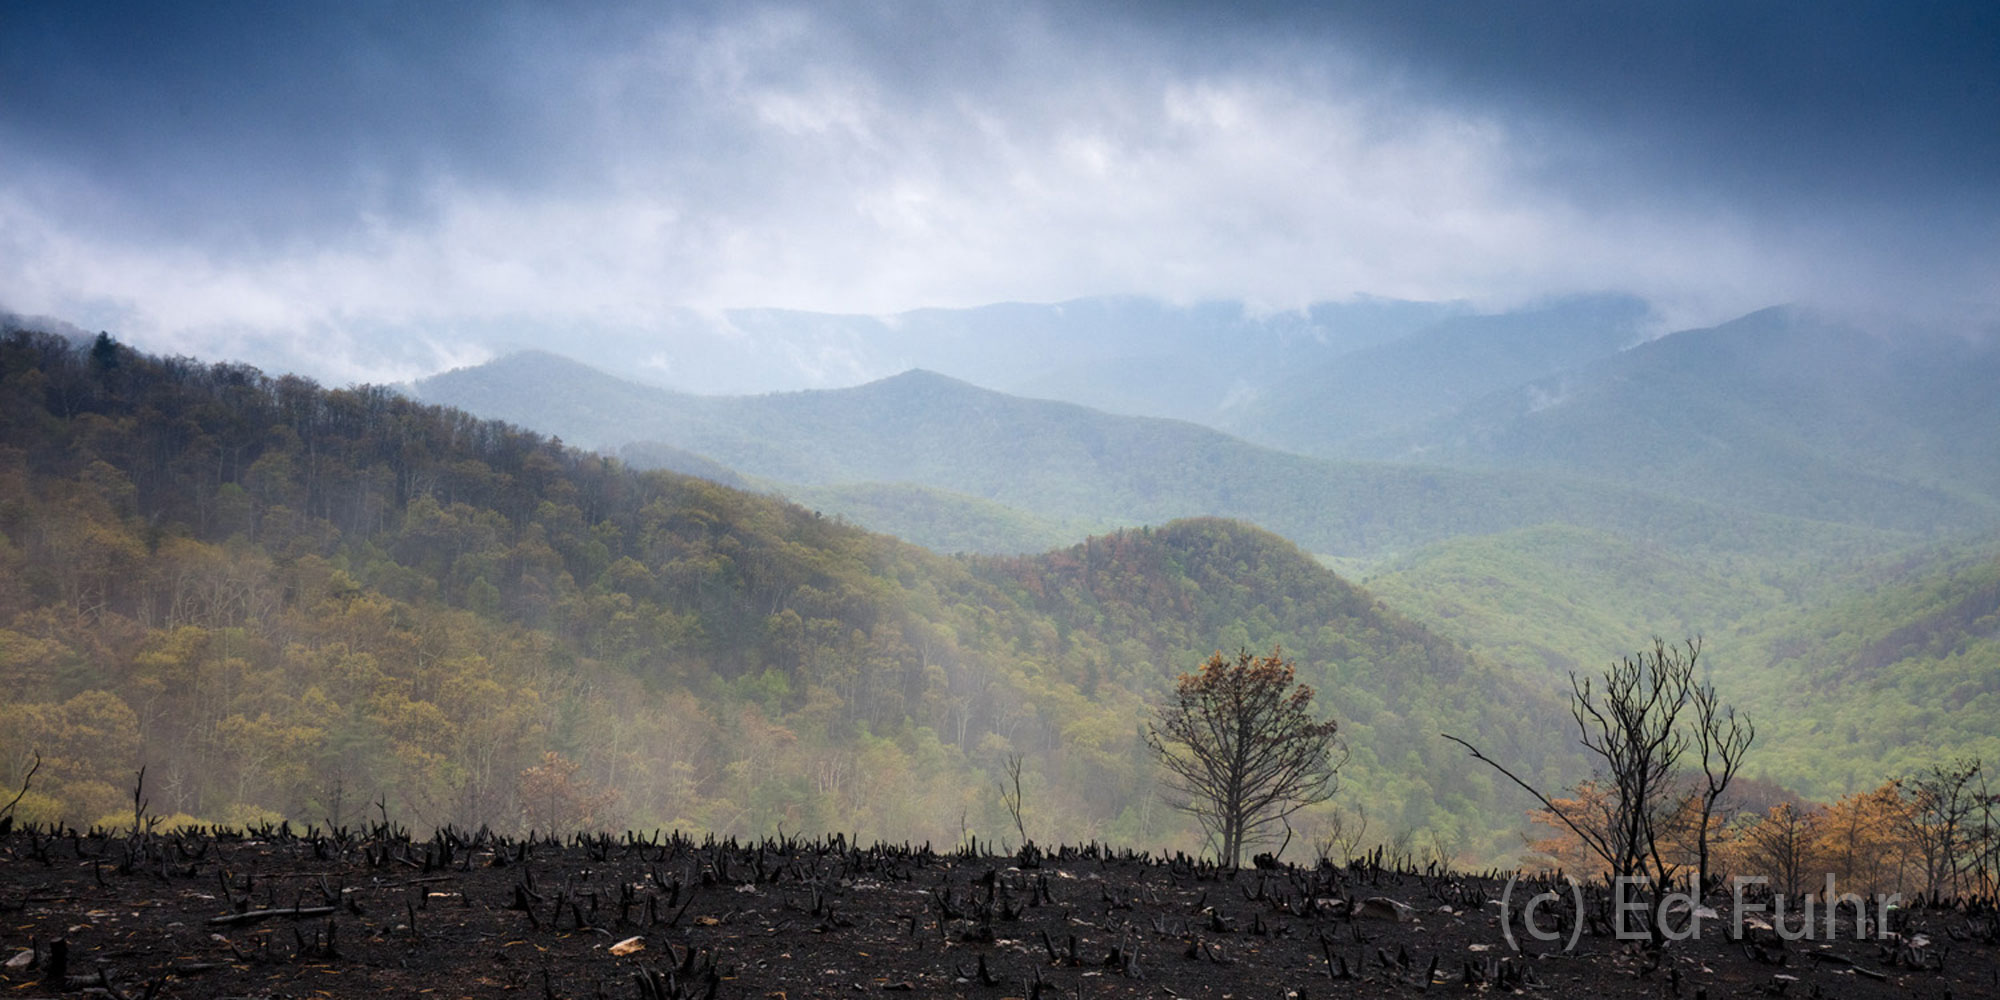 After the Rocky Mount fire has long been extenuished, springs green emerges through the fog, contrasting with the eery black...